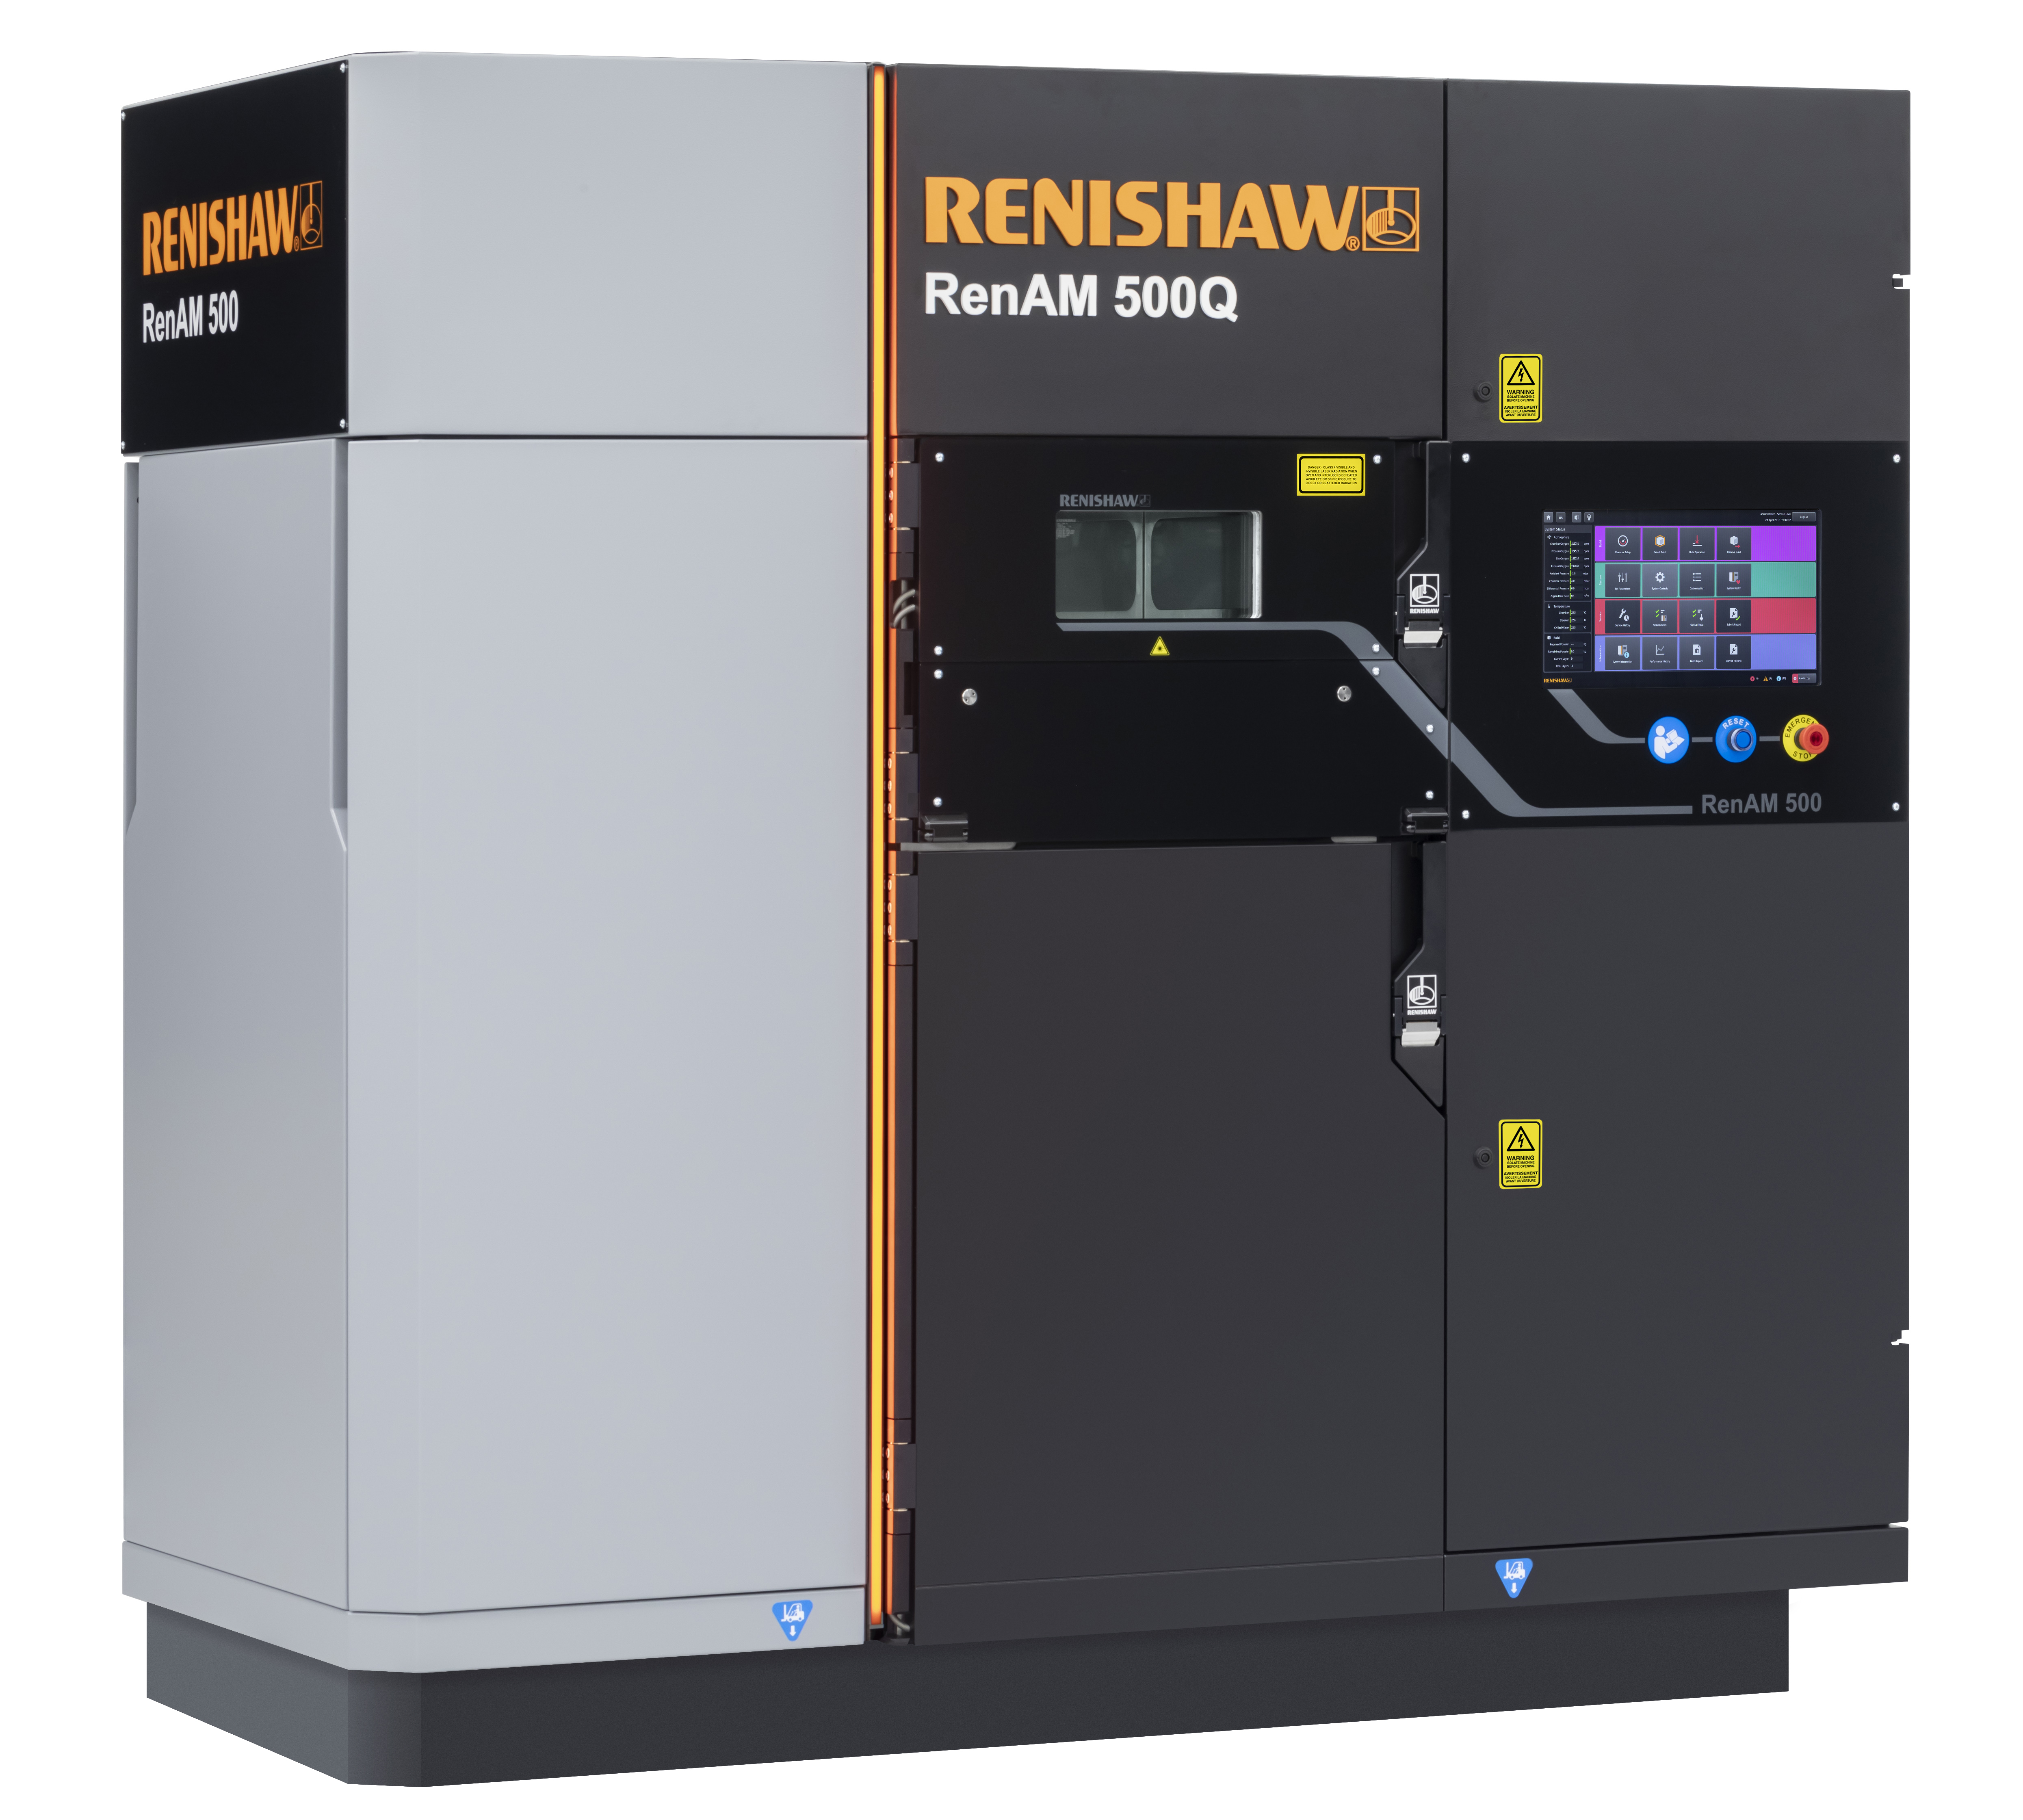 Renishaw Presents Its Latest Smart Factory Solutions at IMTS 2018